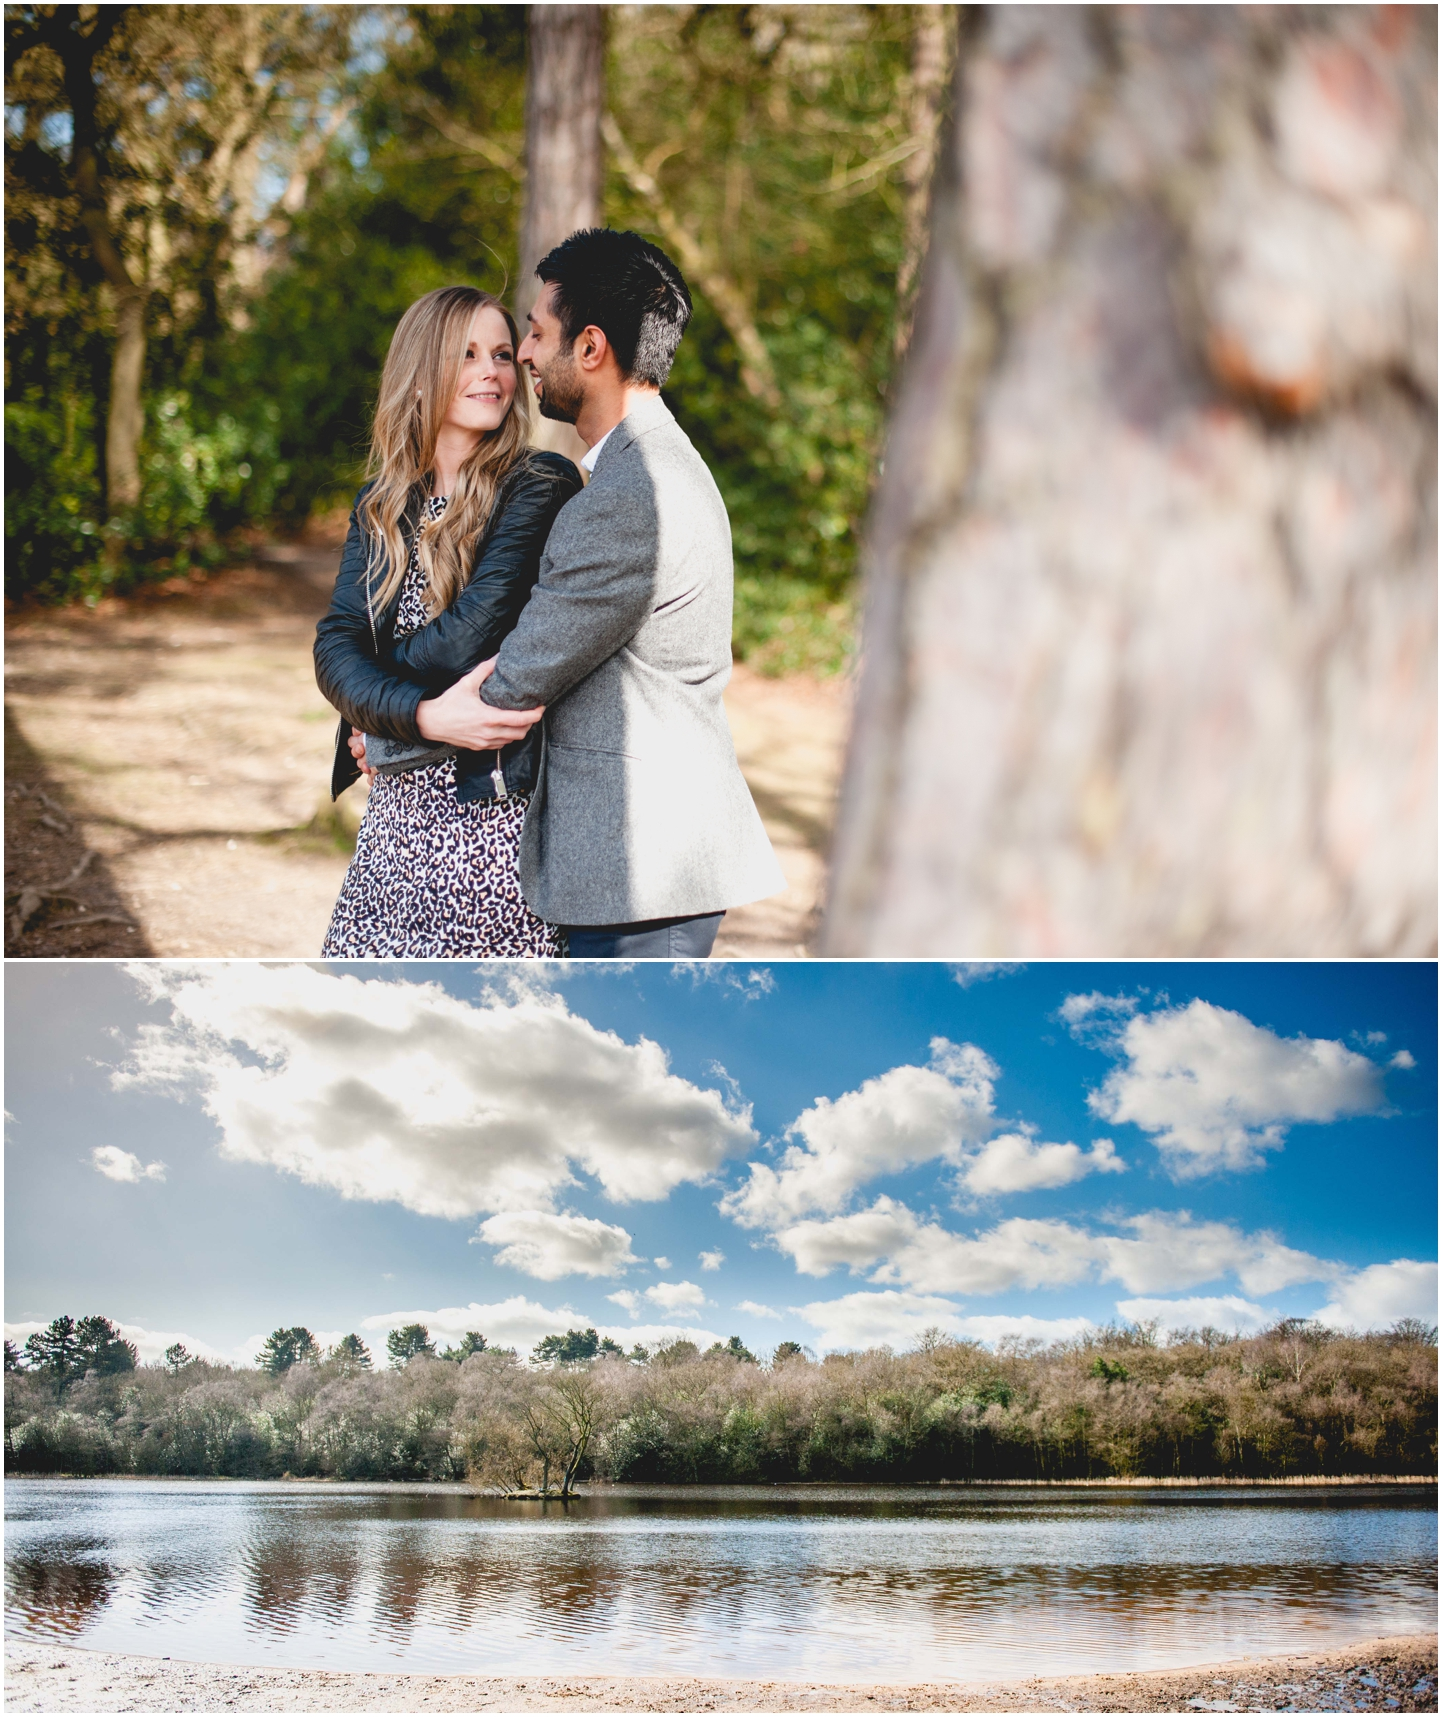 Katie and Pritesh Sutton Park Engagement Shoot, Lisa Carpenter Photography, Wedding Photography, Coombe Abbey